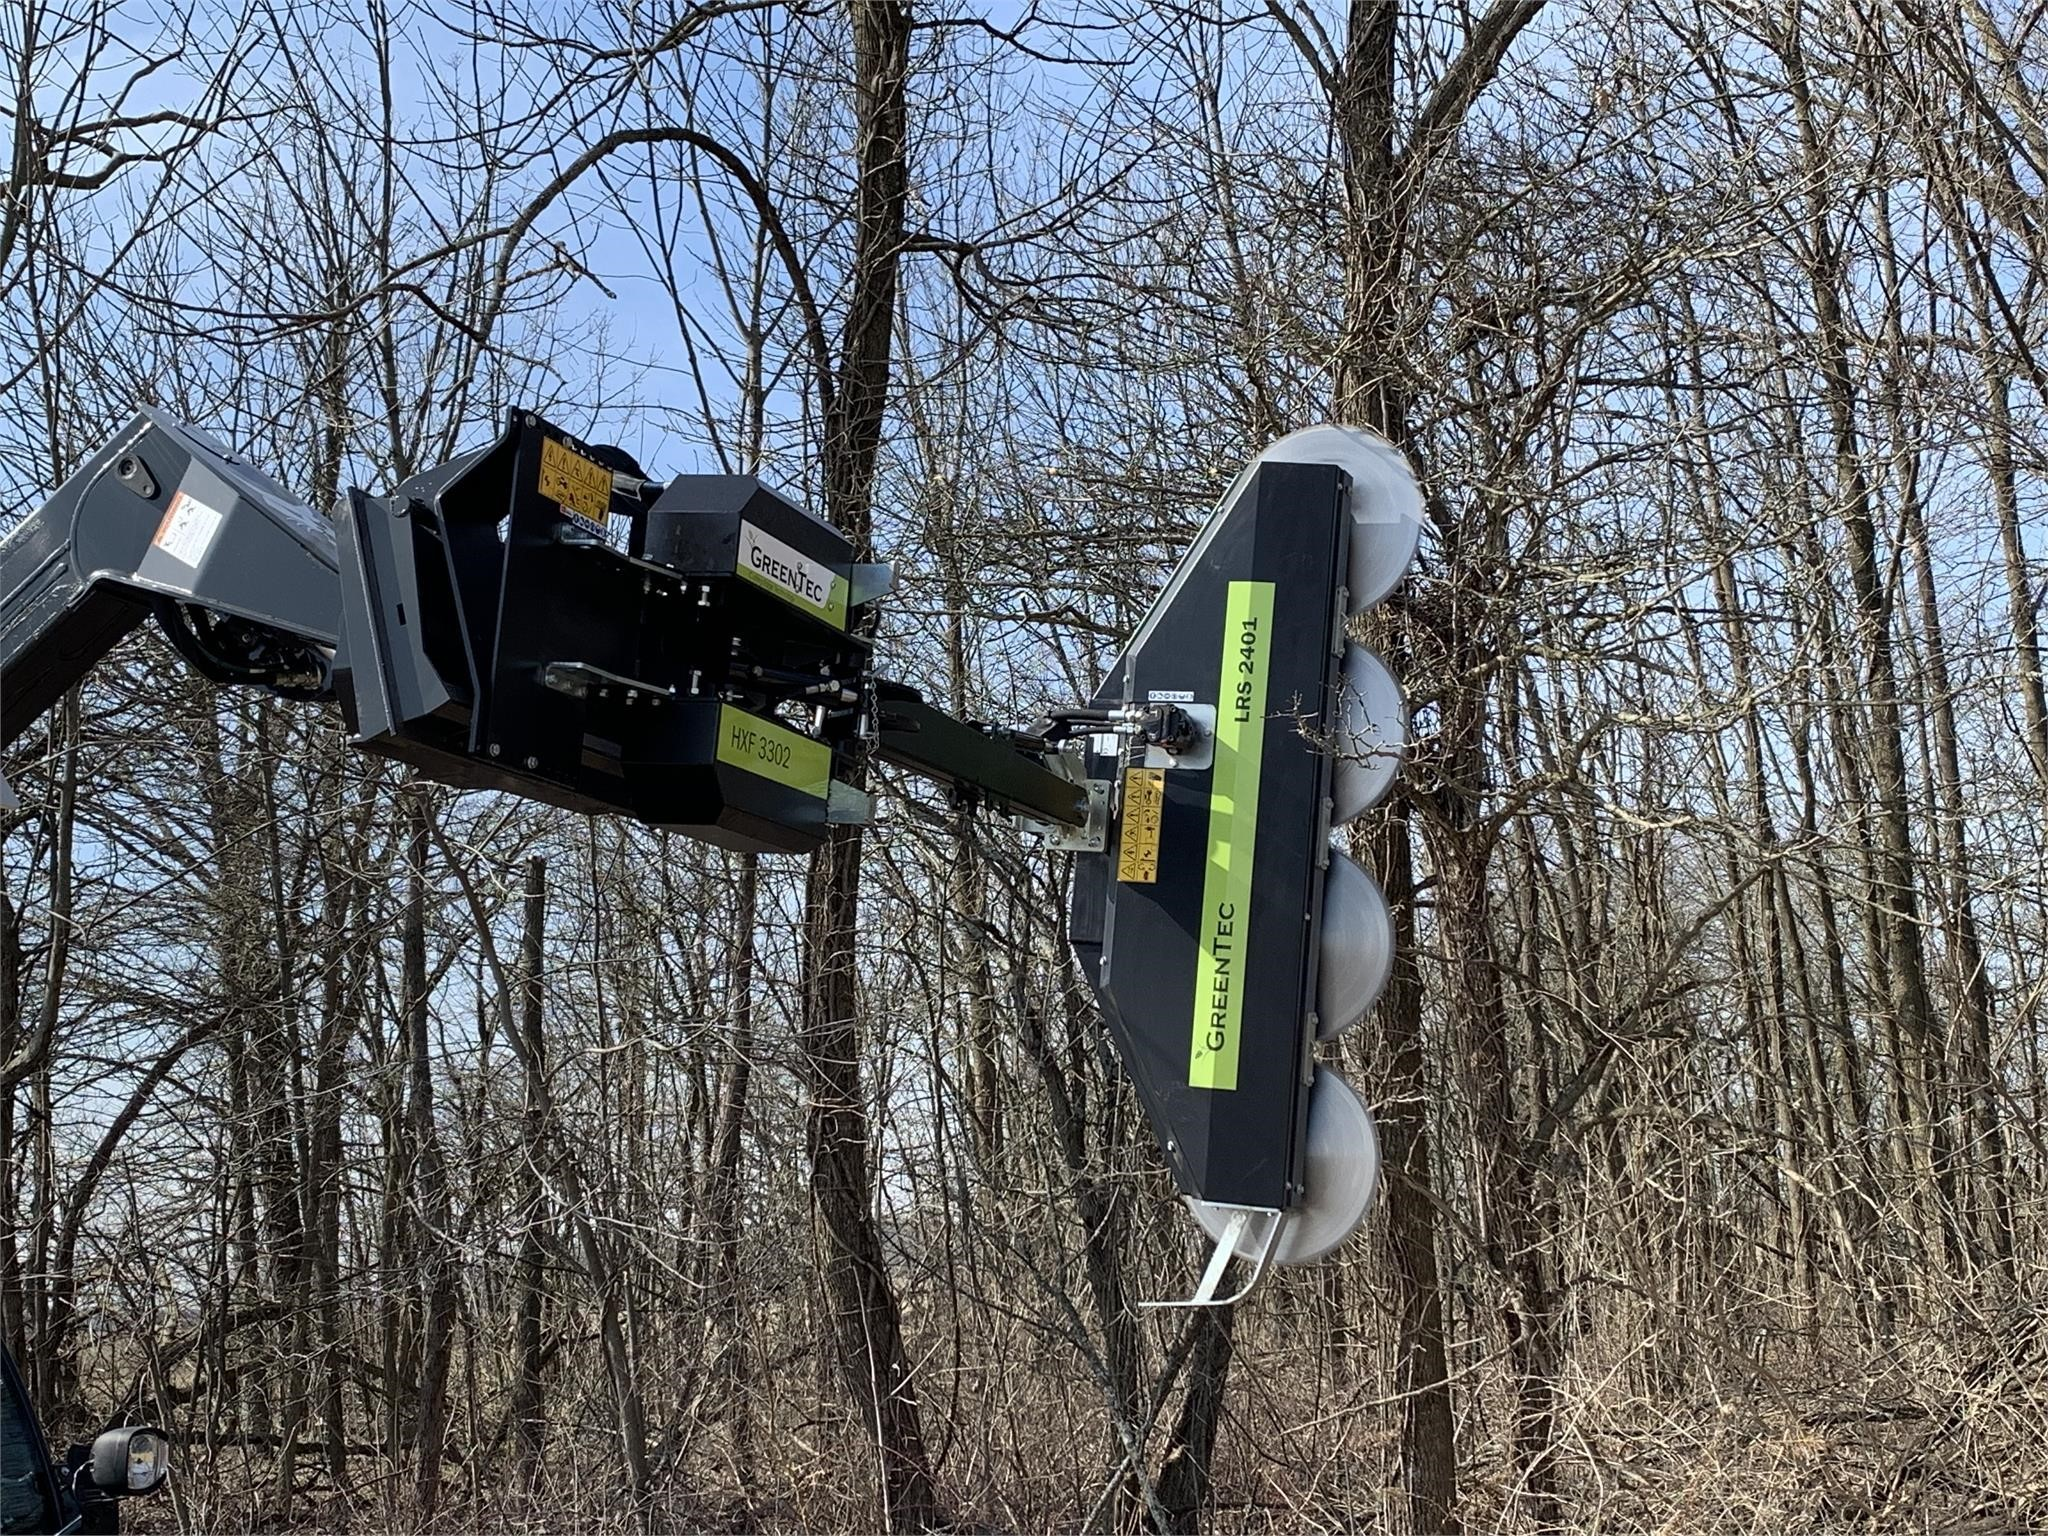 2020 GREENTEC LRS2402 Loader and Skid Steer Attachment